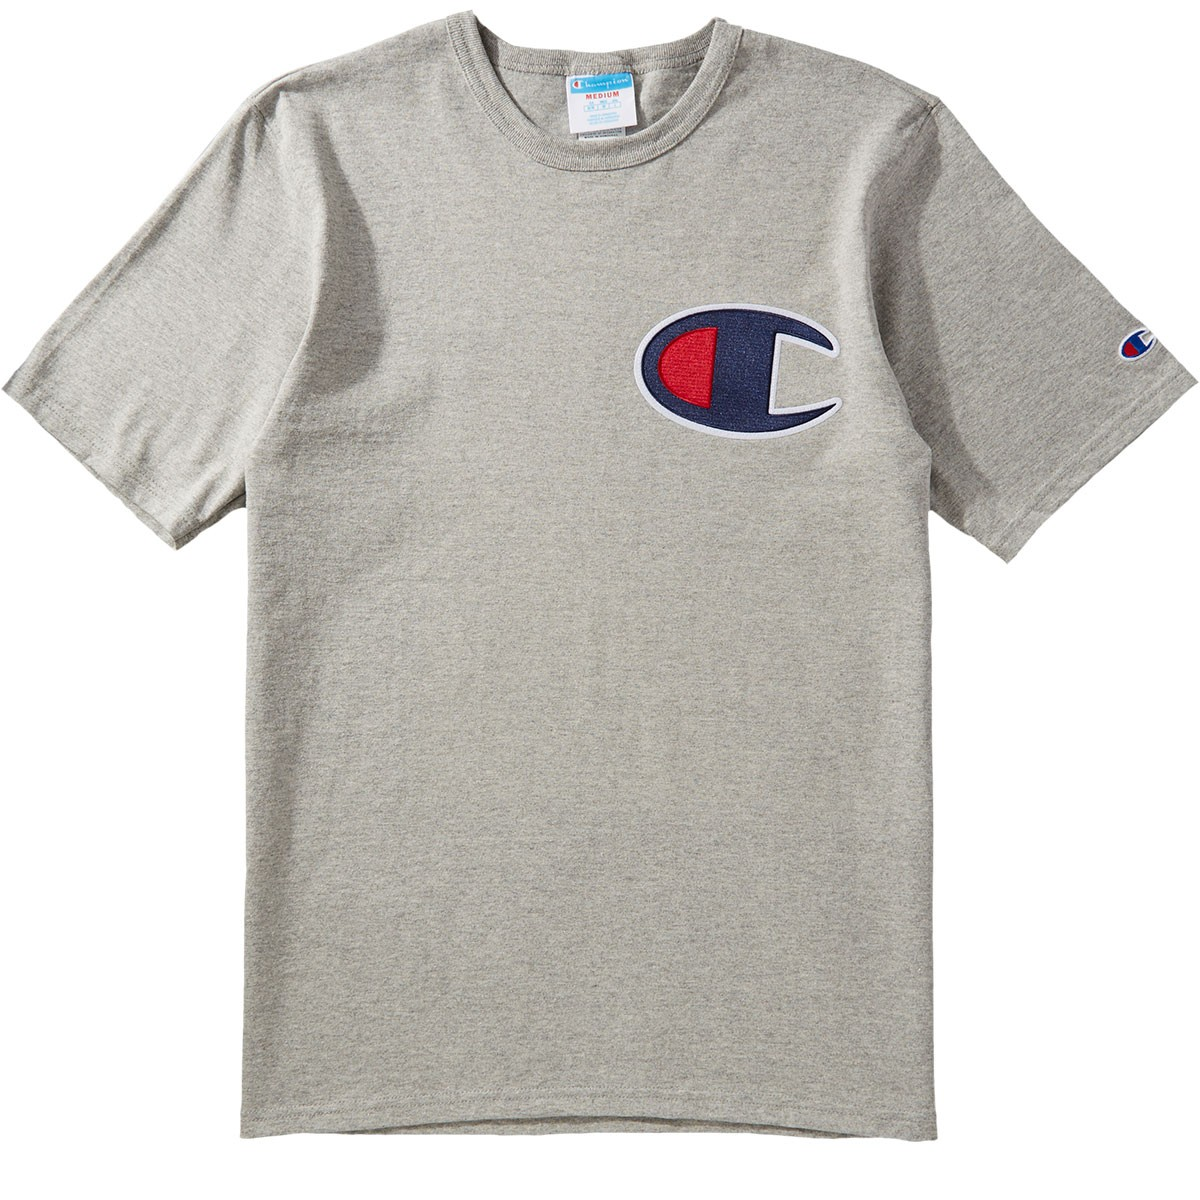 2dad601bf3d6b1 Champion Heritage T-Shirt - Oxford Grey